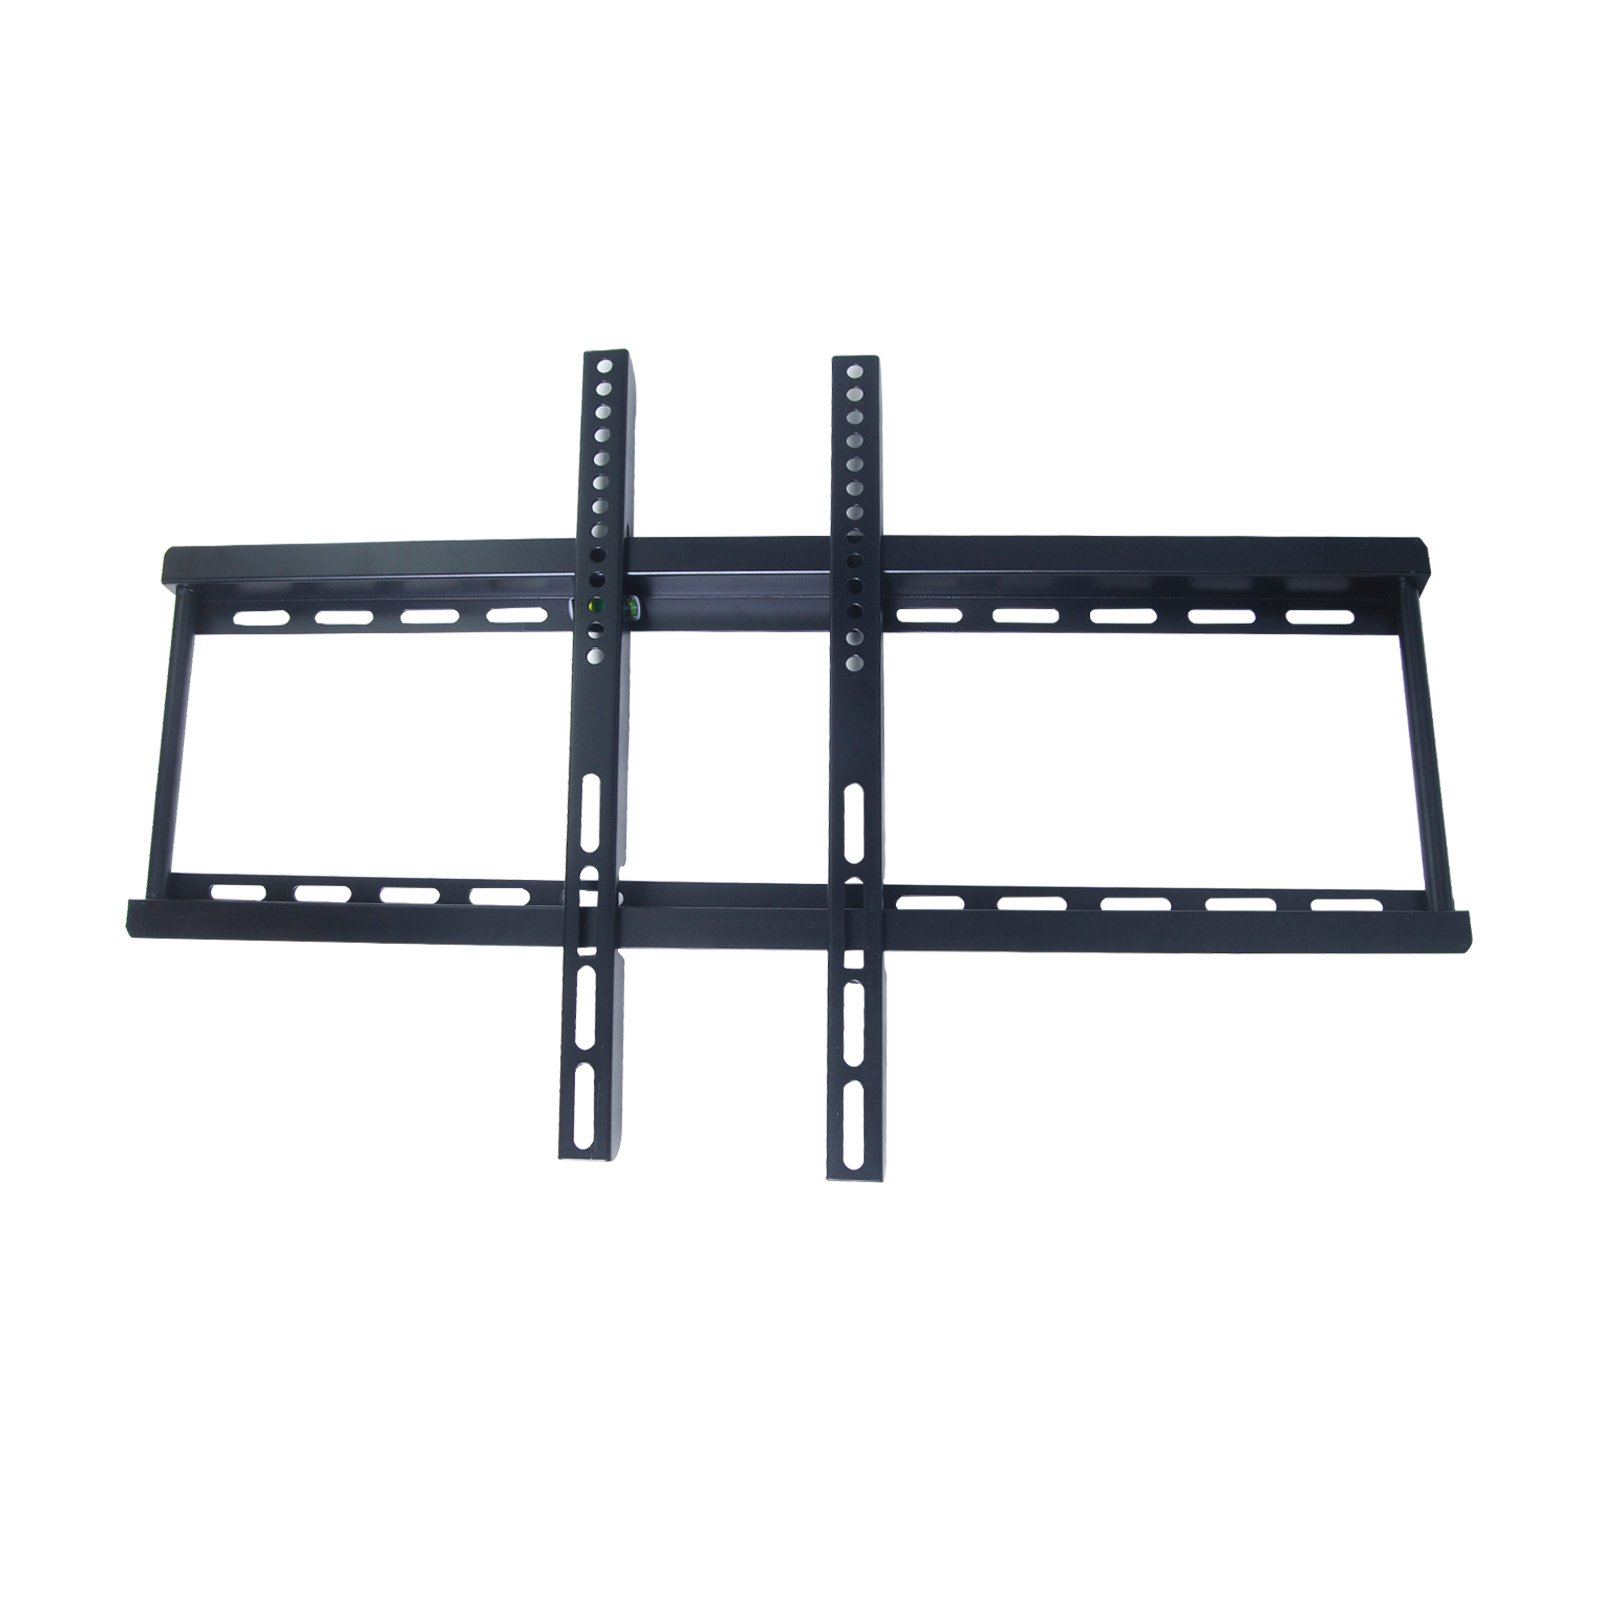 Excellent LED & Plasma TV TV Wall Bracket for 40-70 Inch Max VESA 200200mm TO 400600mm Load Capacity Up to 50KG